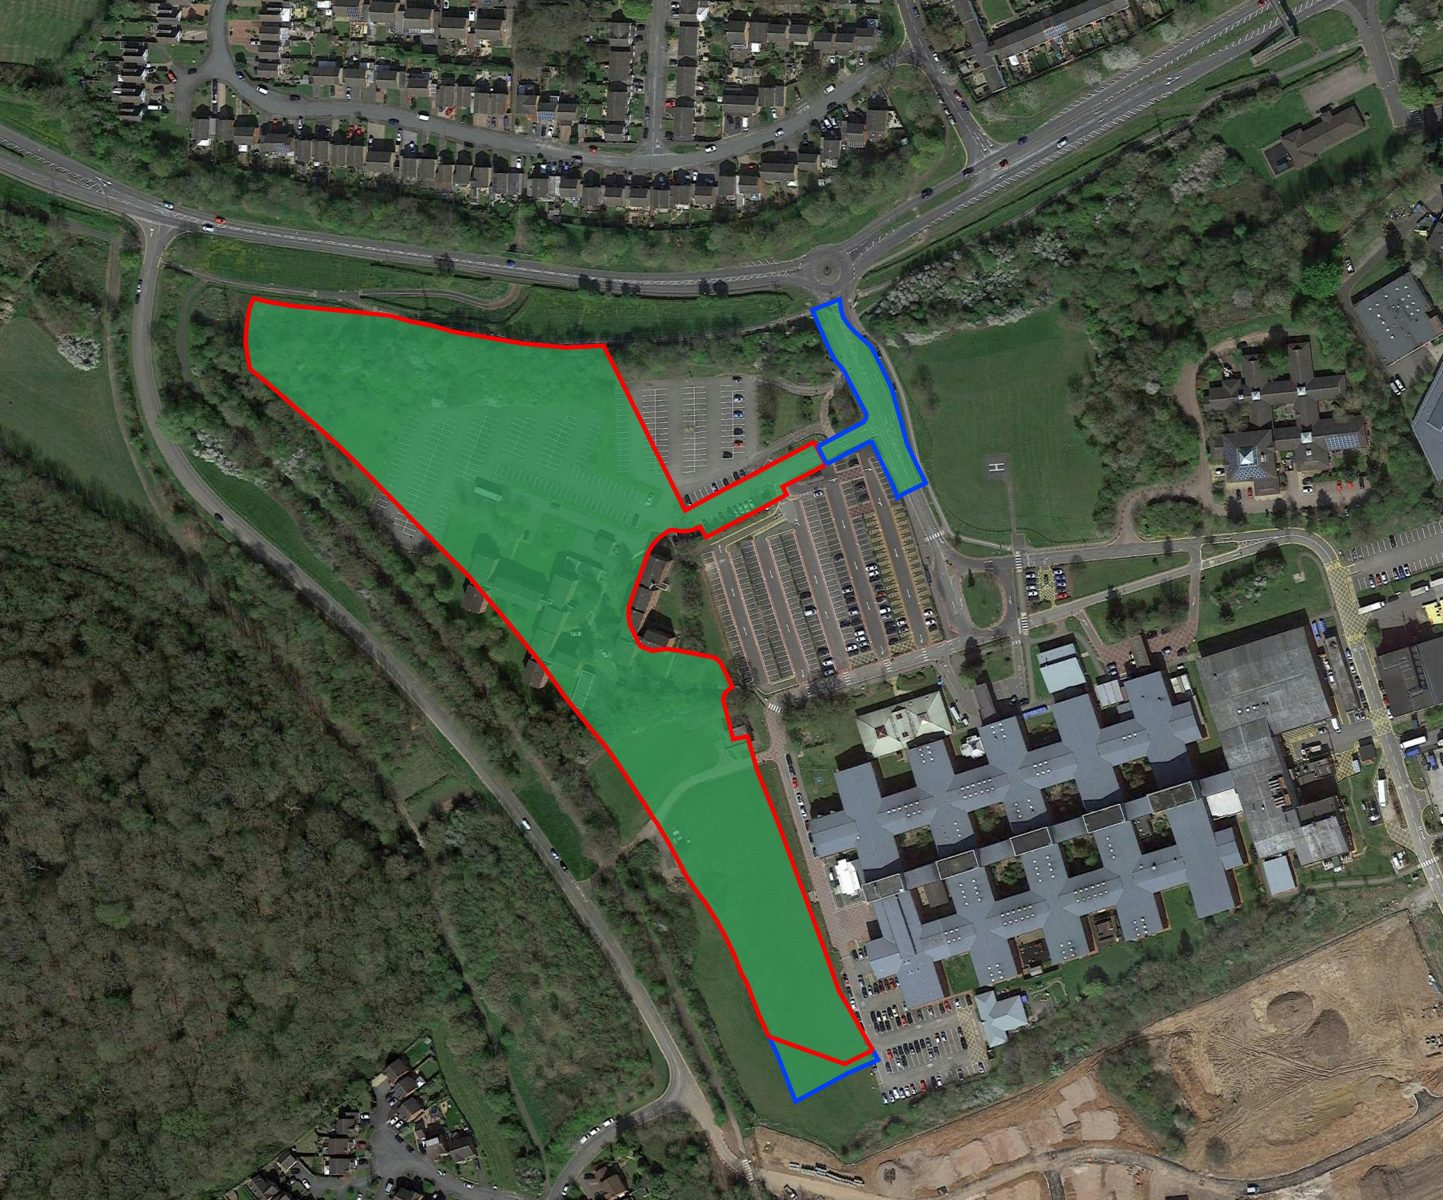 SevenHomes acquires two NHS sites for 130 new homes